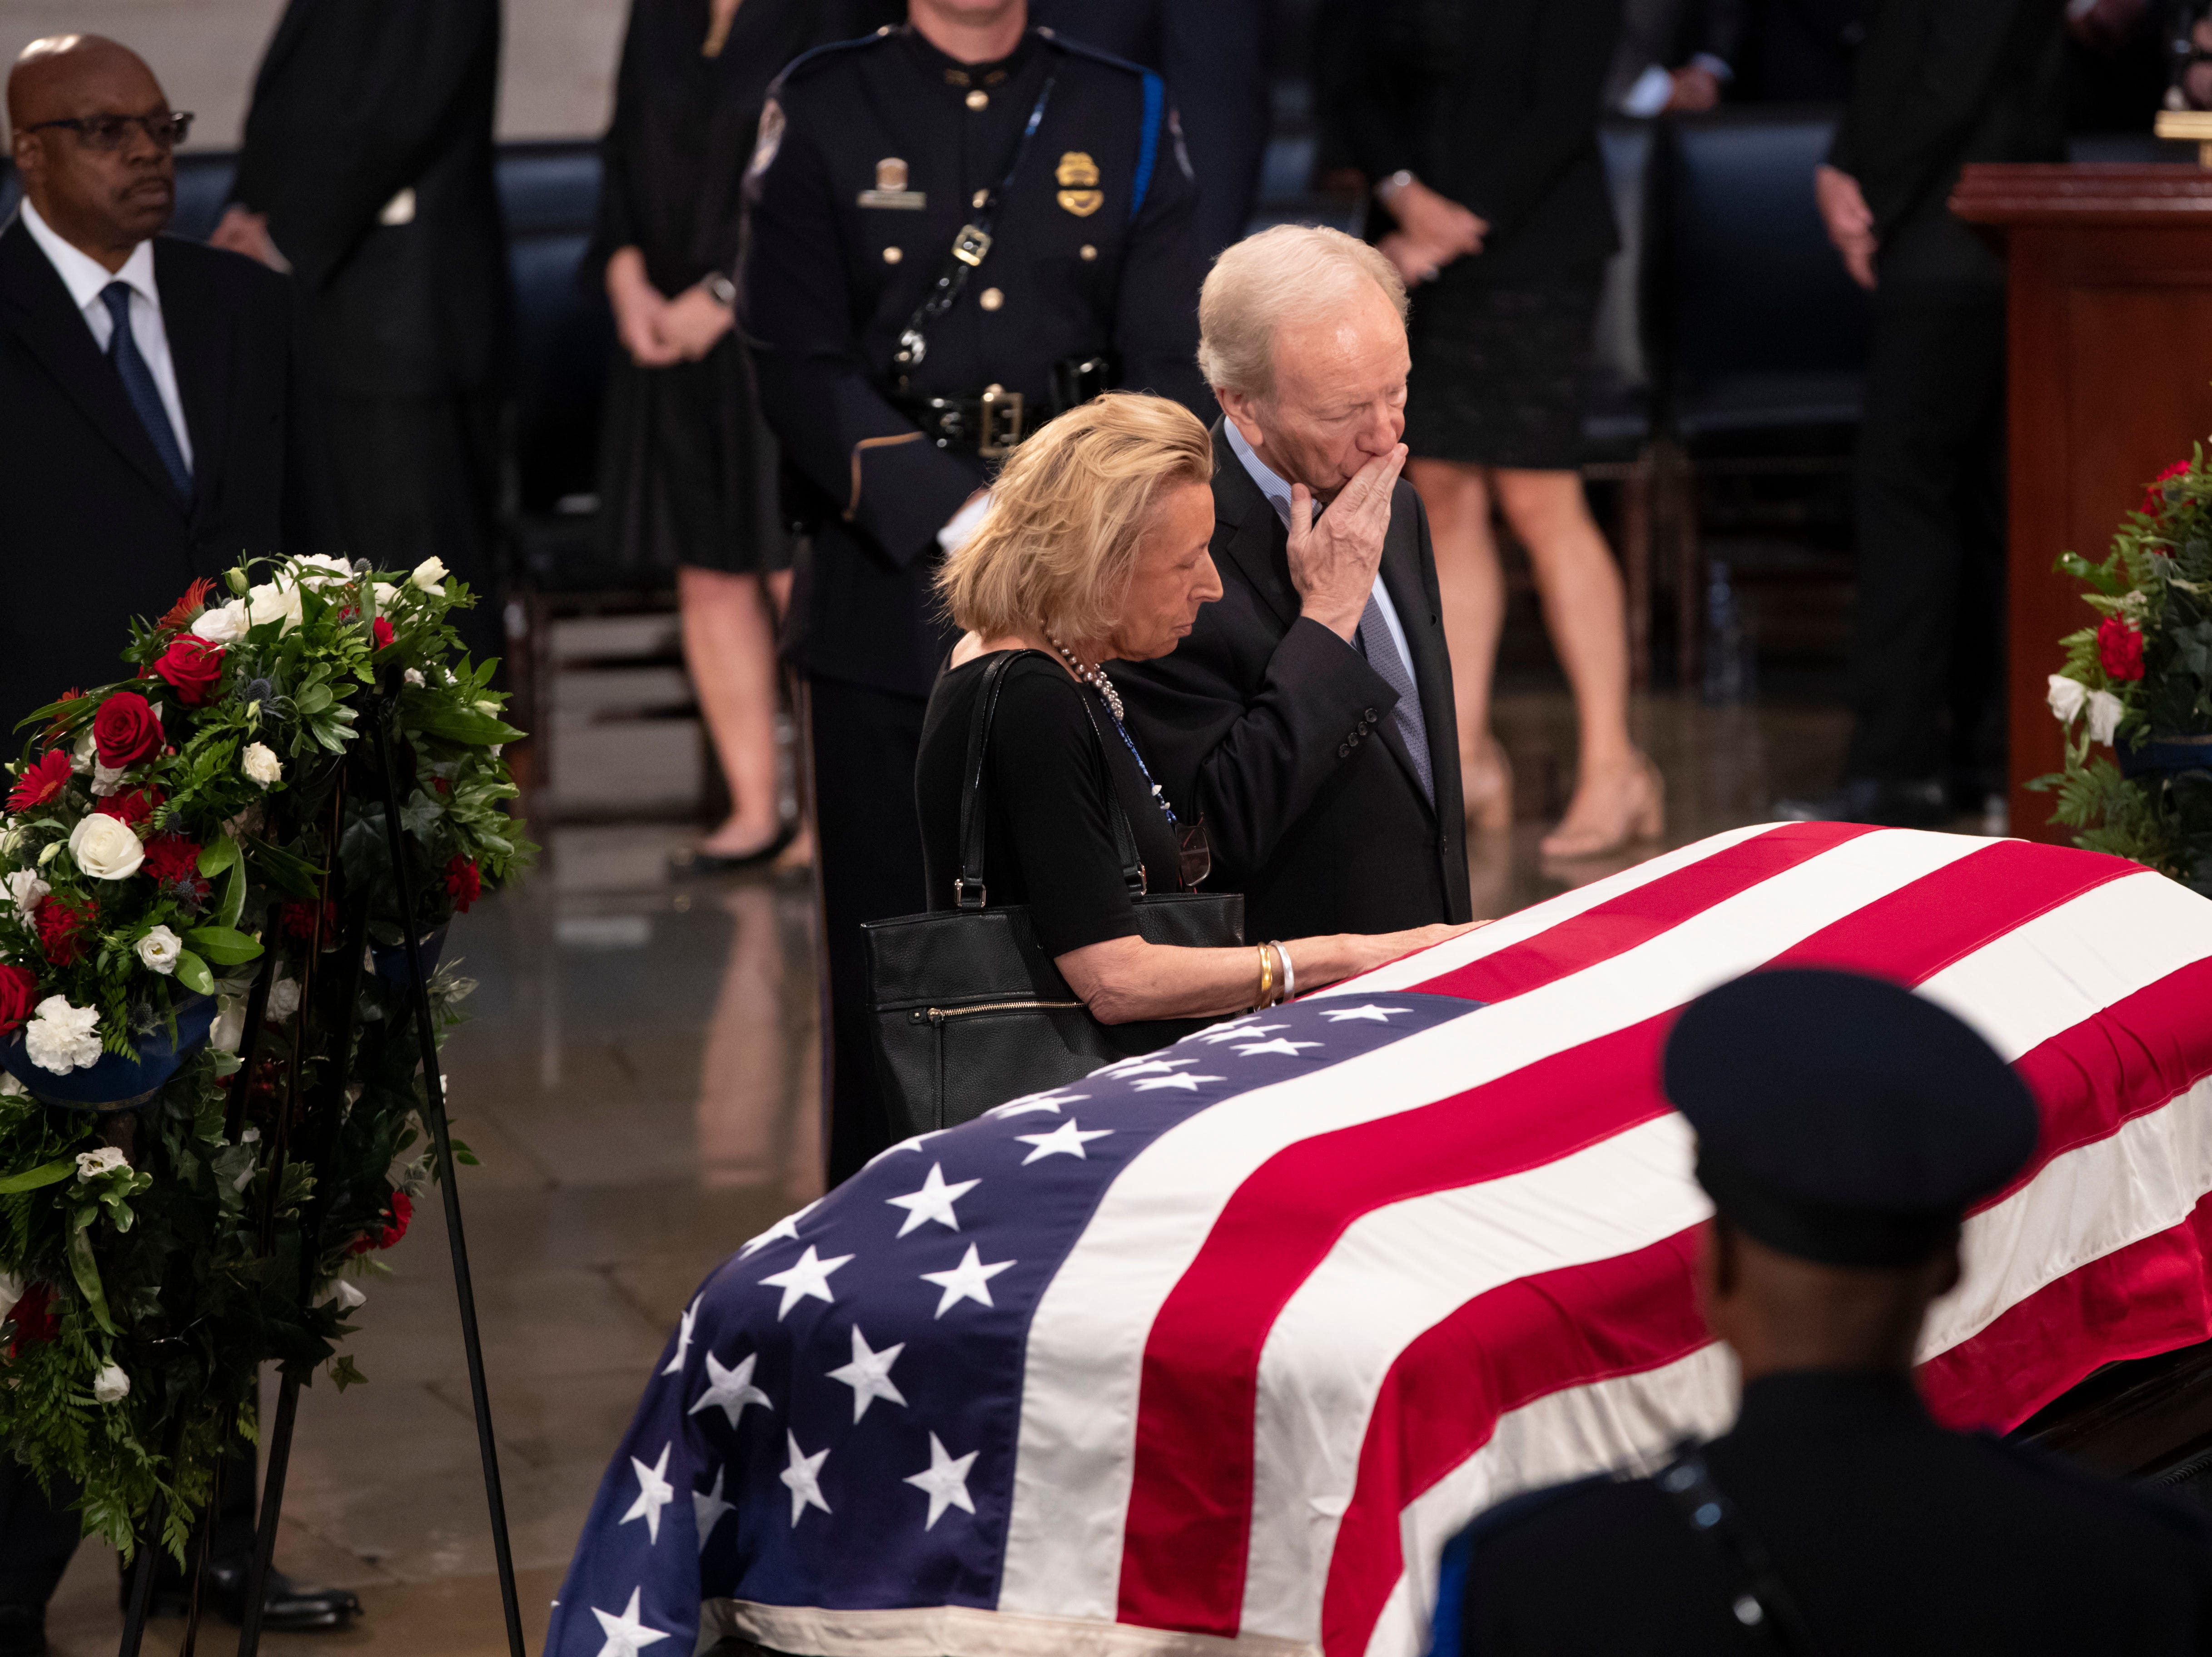 Sen. Joe Lieberman, right, and his wife Hadassah Lieberman, pay their respects at the flag-draped casket of Sen. John McCain of Arizona, who lived and worked in Congress over four decades, in the U.S. Capitol rotunda, Friday, Aug. 31, 2018, in Washington. McCain was a six-term senator, a former Republican nominee for president, and a Navy pilot who served in Vietnam, where he endured five-and-a-half years as a prisoner of war. He died Aug. 25 from brain cancer at age 81. (AP Photo/J. Scott Applewhite)